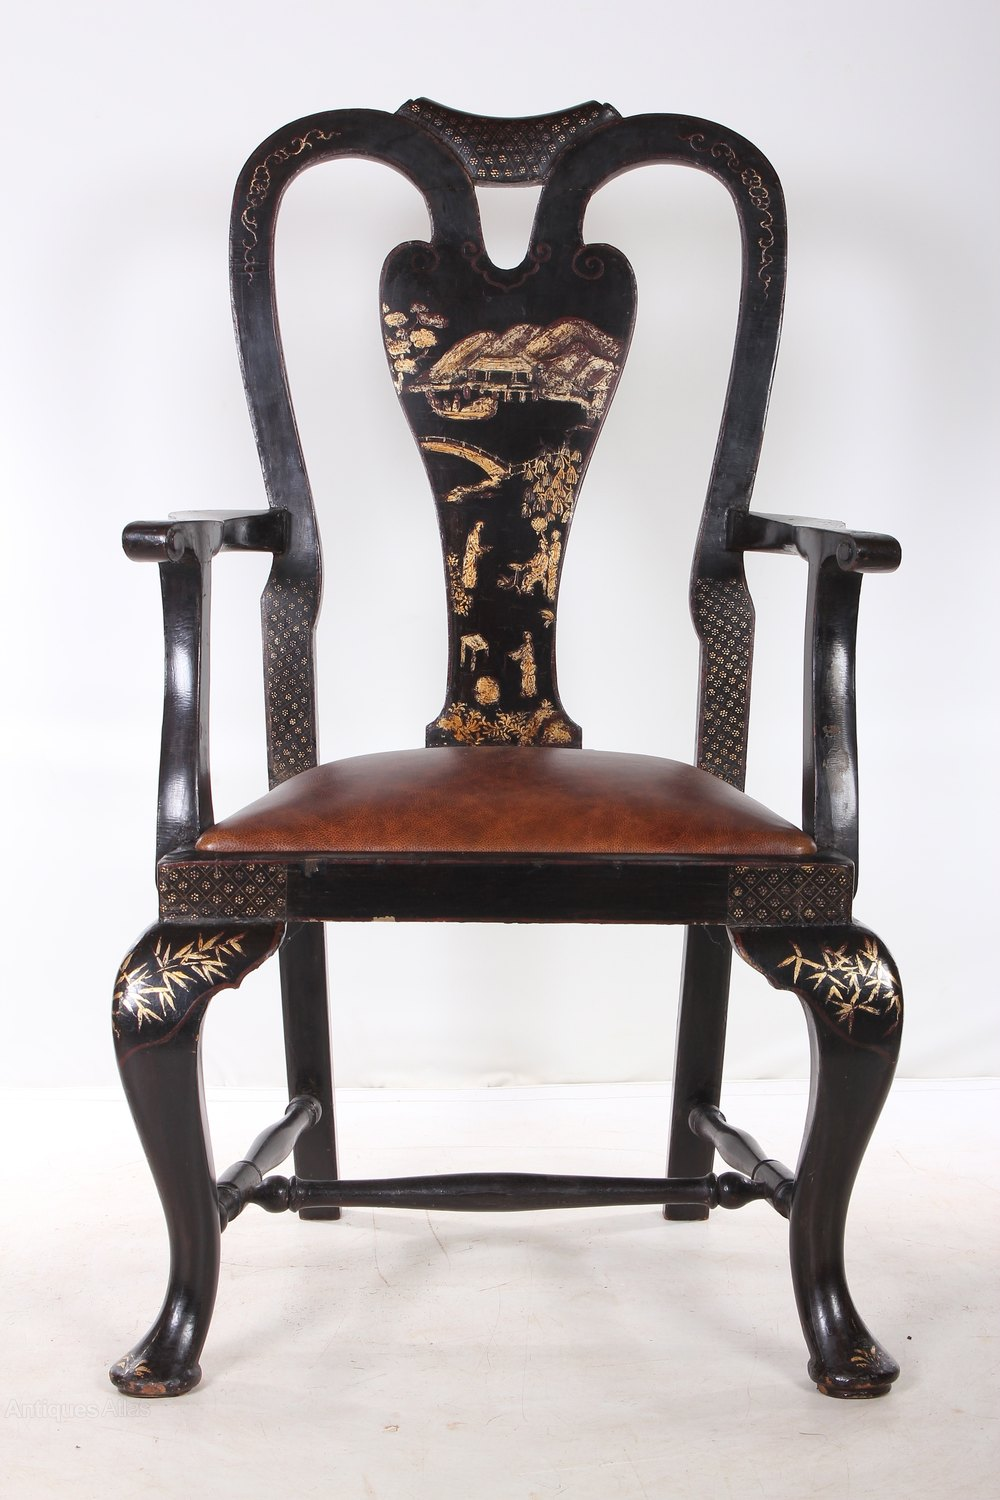 queen anne style chair florida electric set of 6 black chinoiserie chairs - antiques atlas